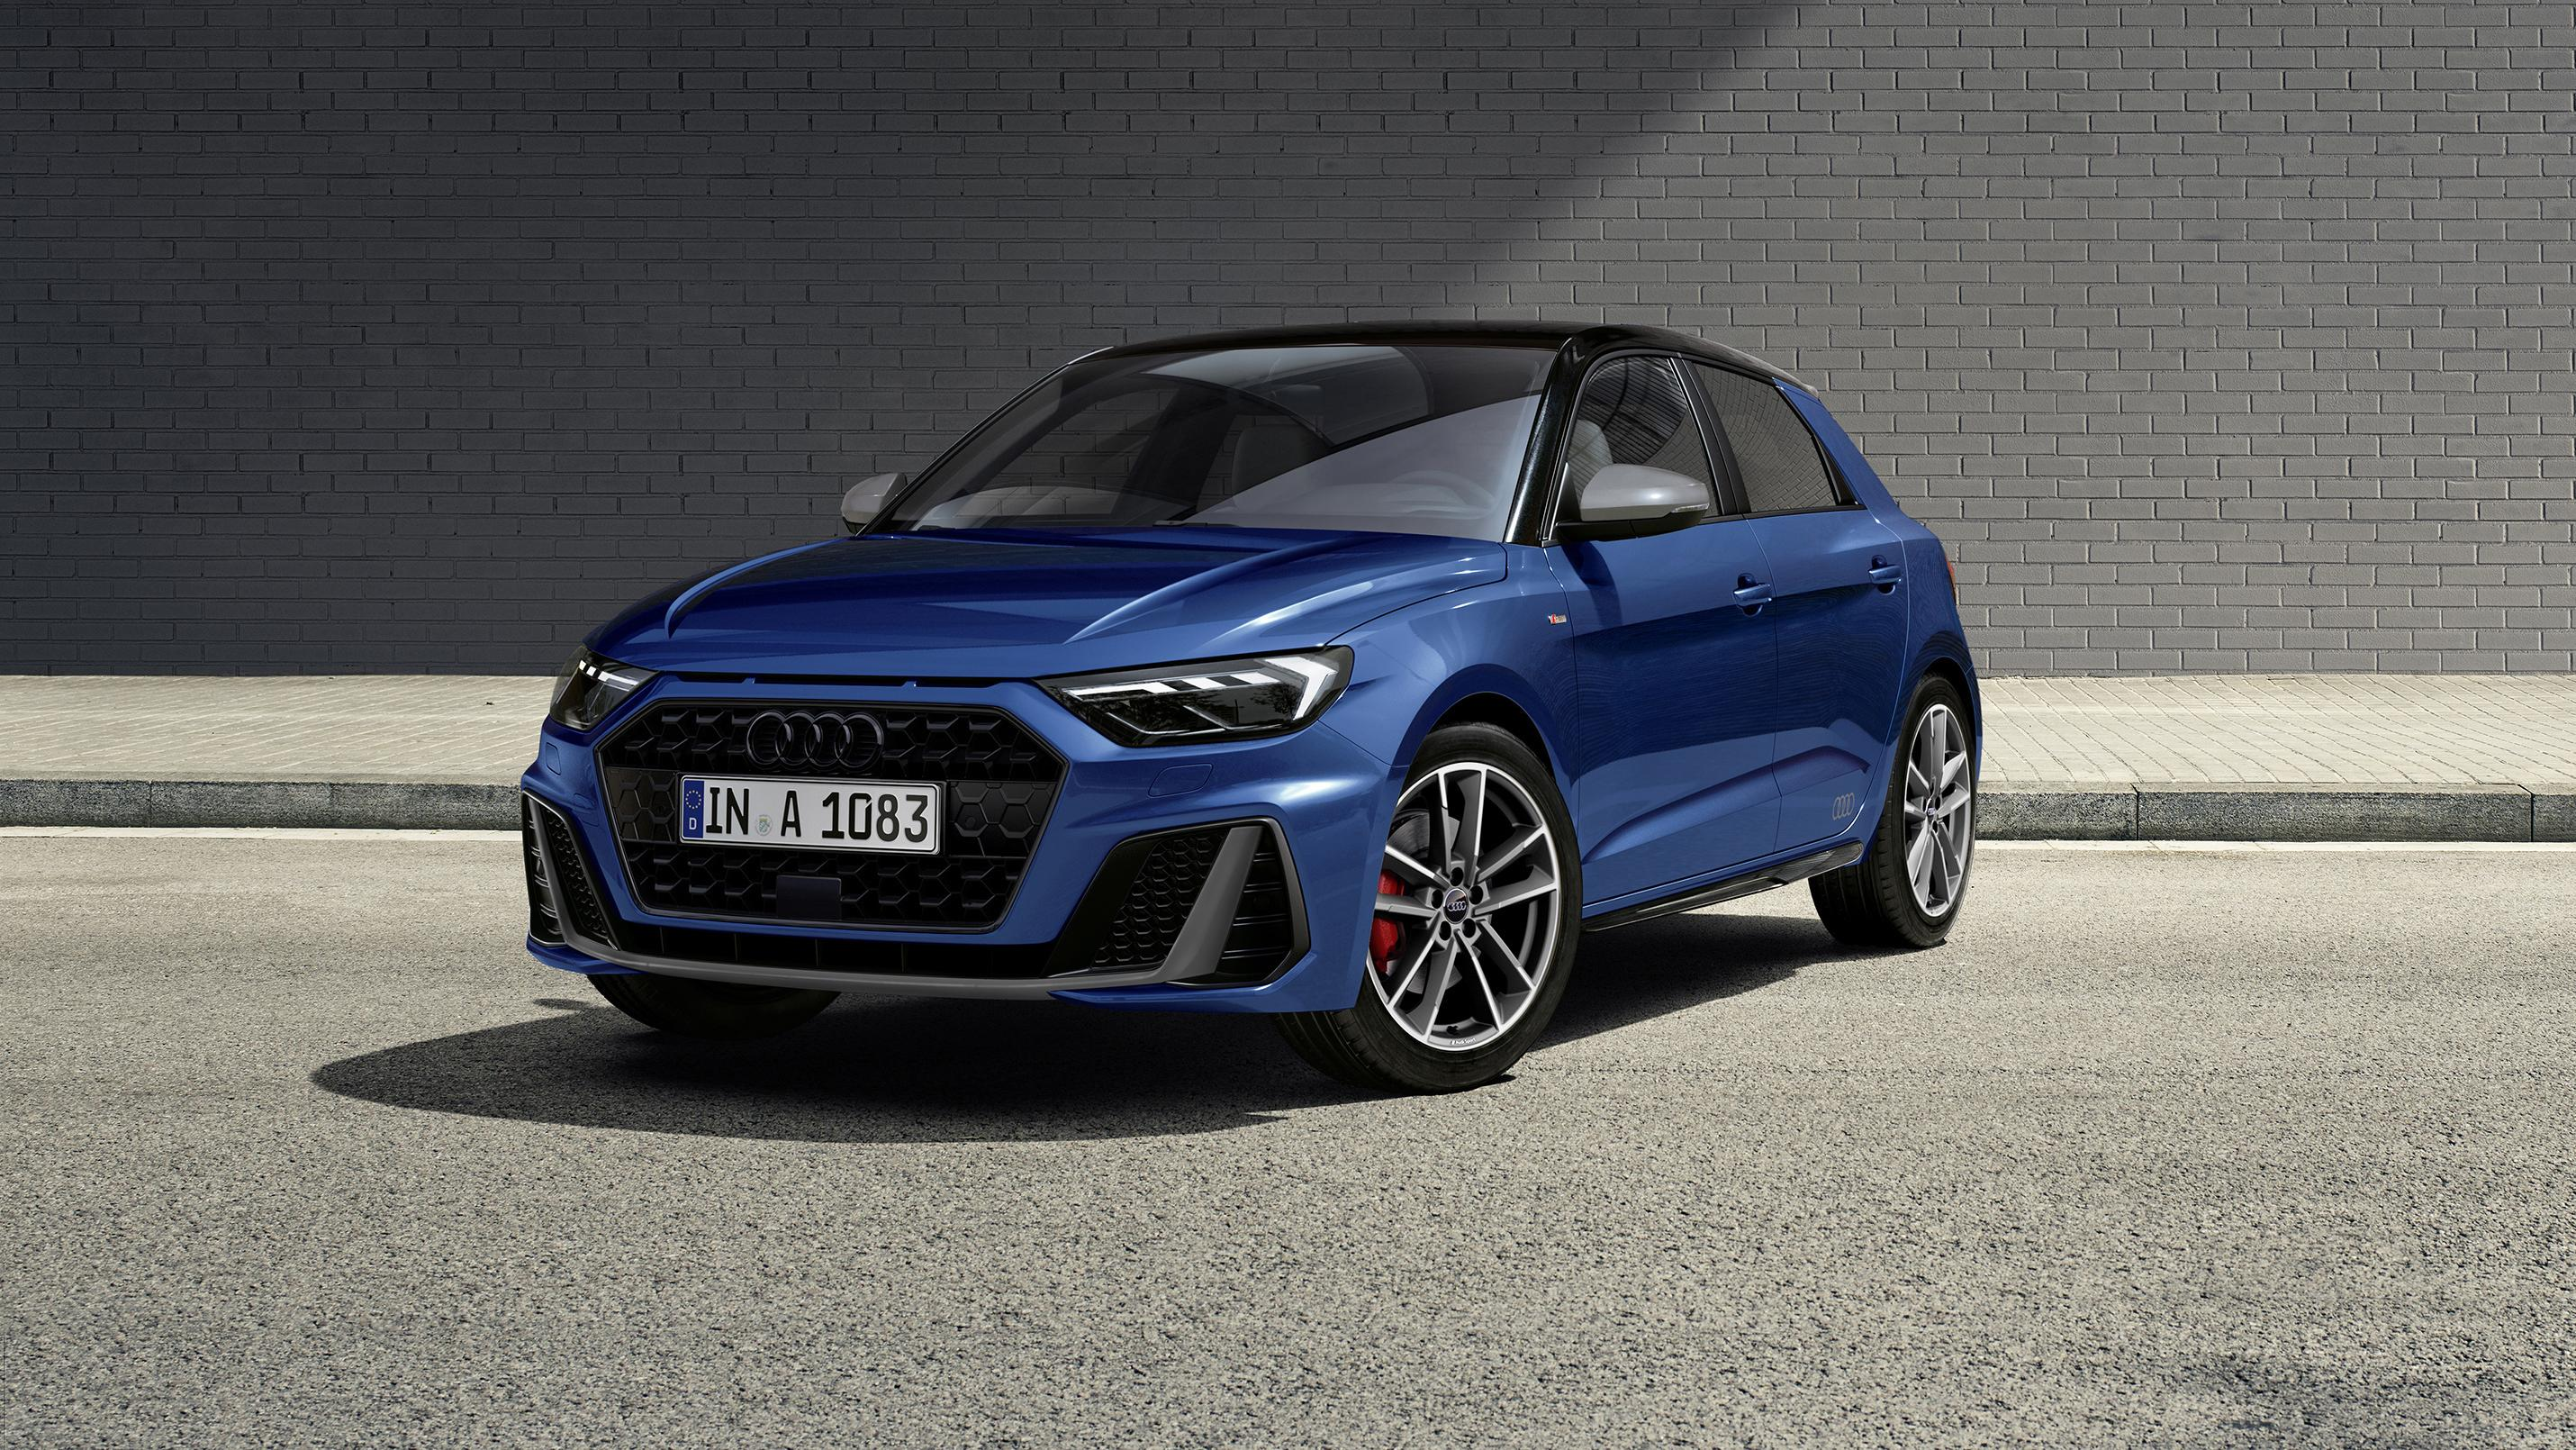 Volkswagen Polo GTI and Audi A1 40 TFSI get power bump, no local plans